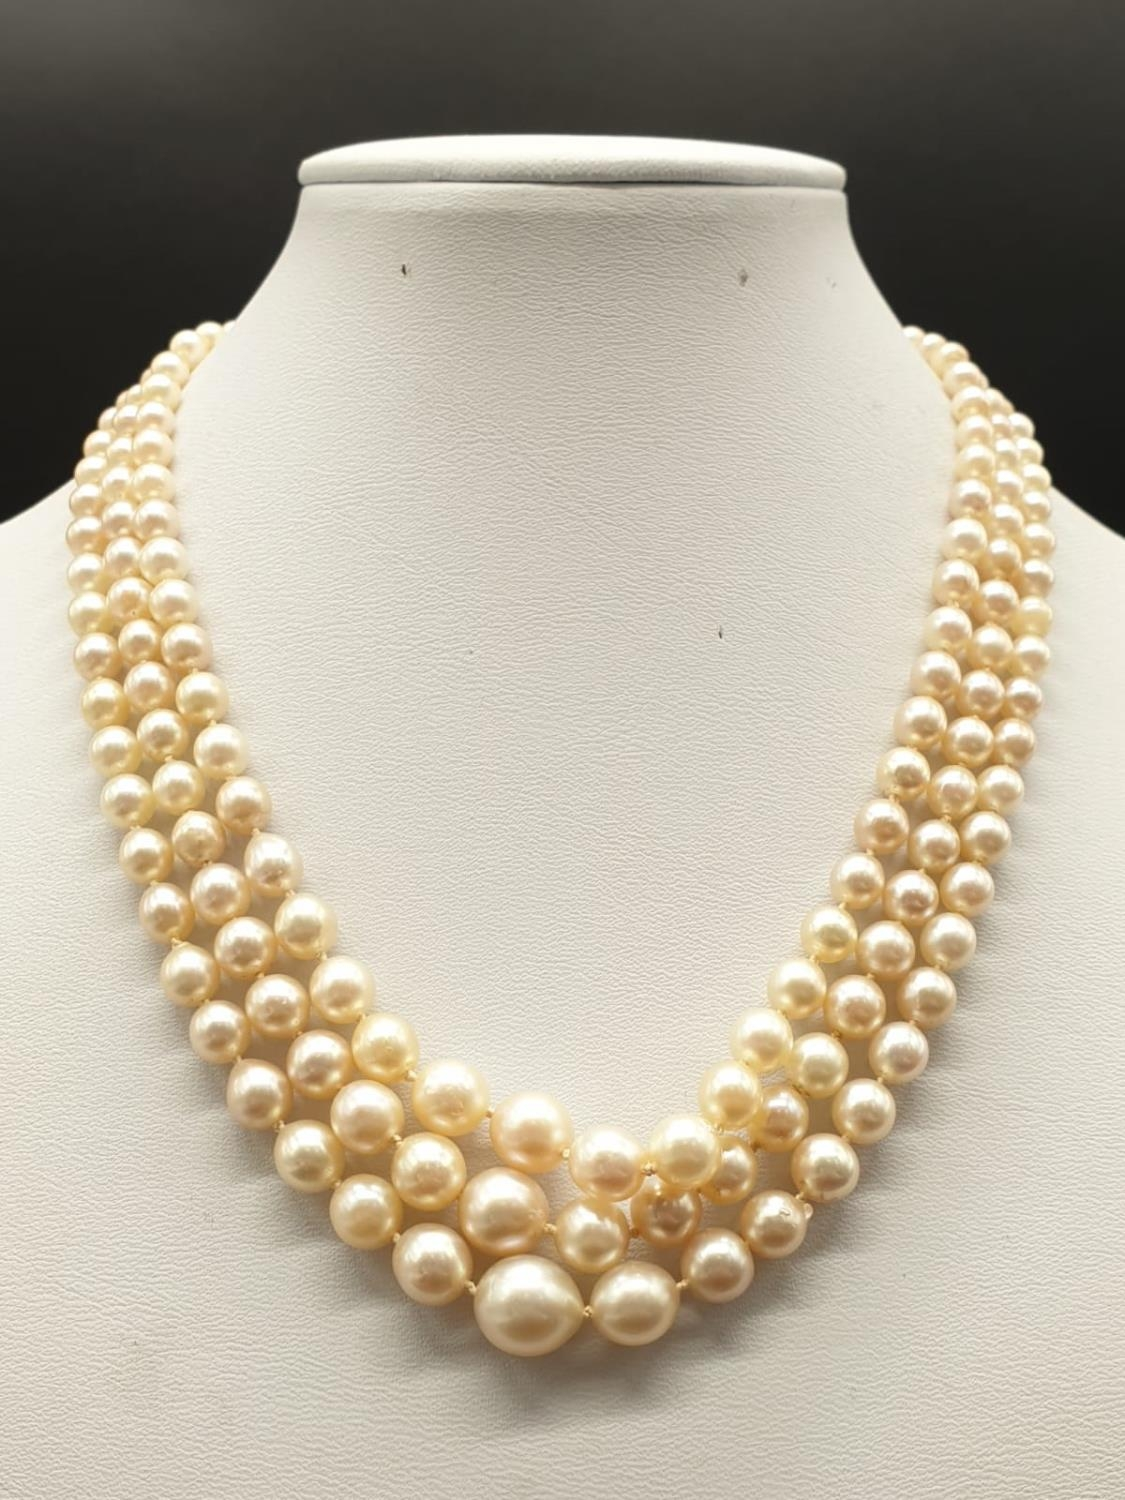 A 3 ROW GRADUATED PEARL NECKLACE WITH PLATINUM AND DIAMOND CLASP 48gms and 18cms in length - Image 2 of 6